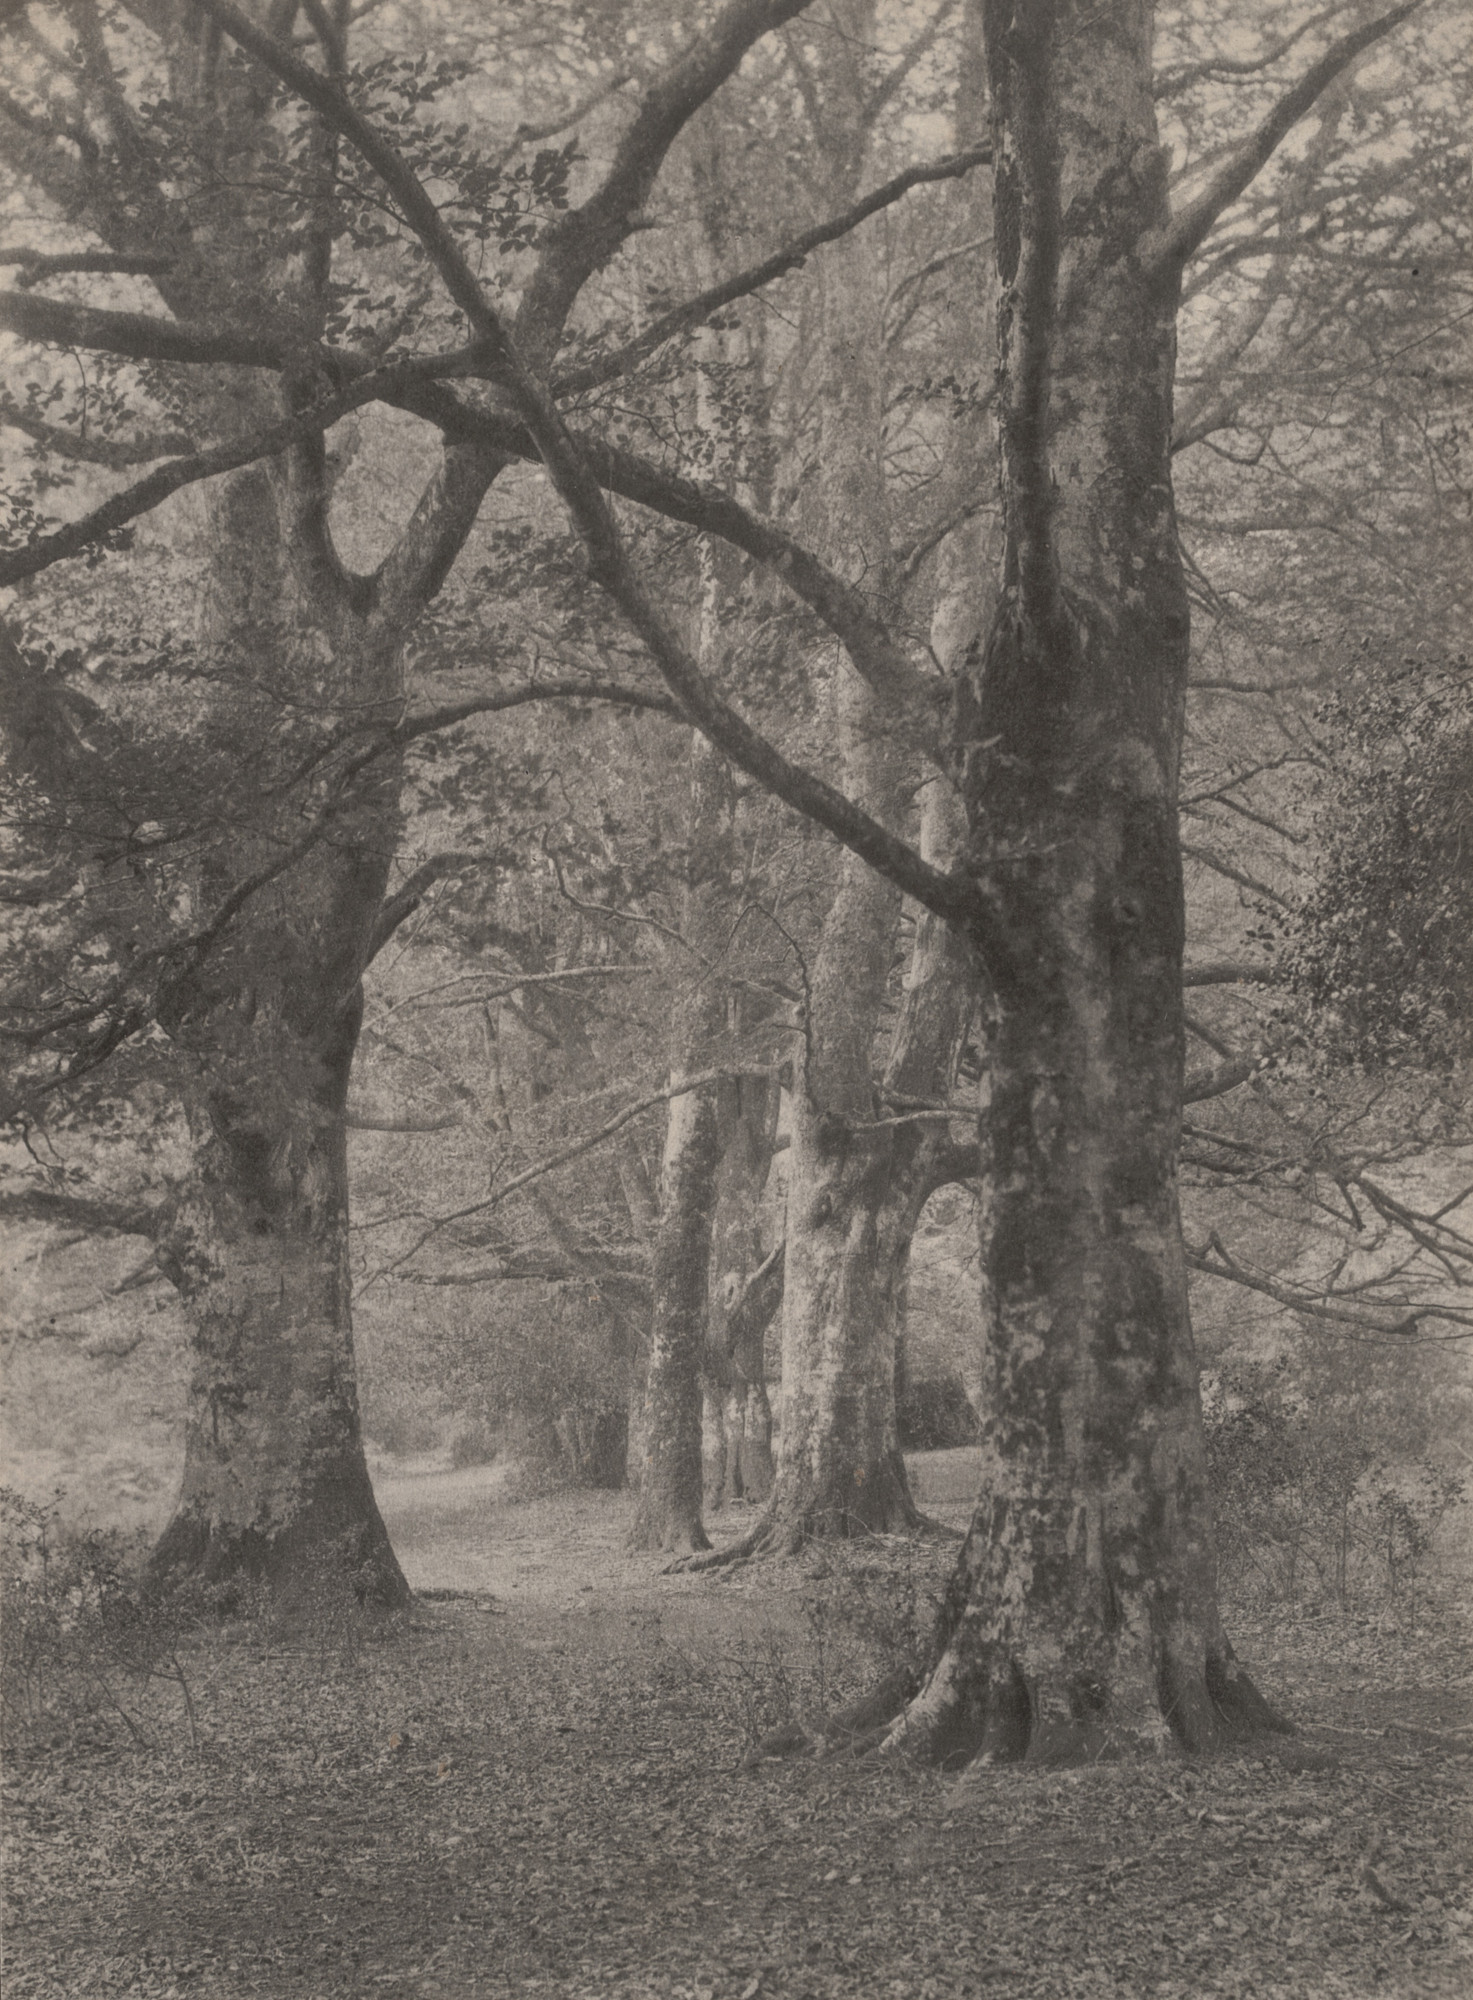 Frederick H. Evans. A Glade in the New Forest. 1891